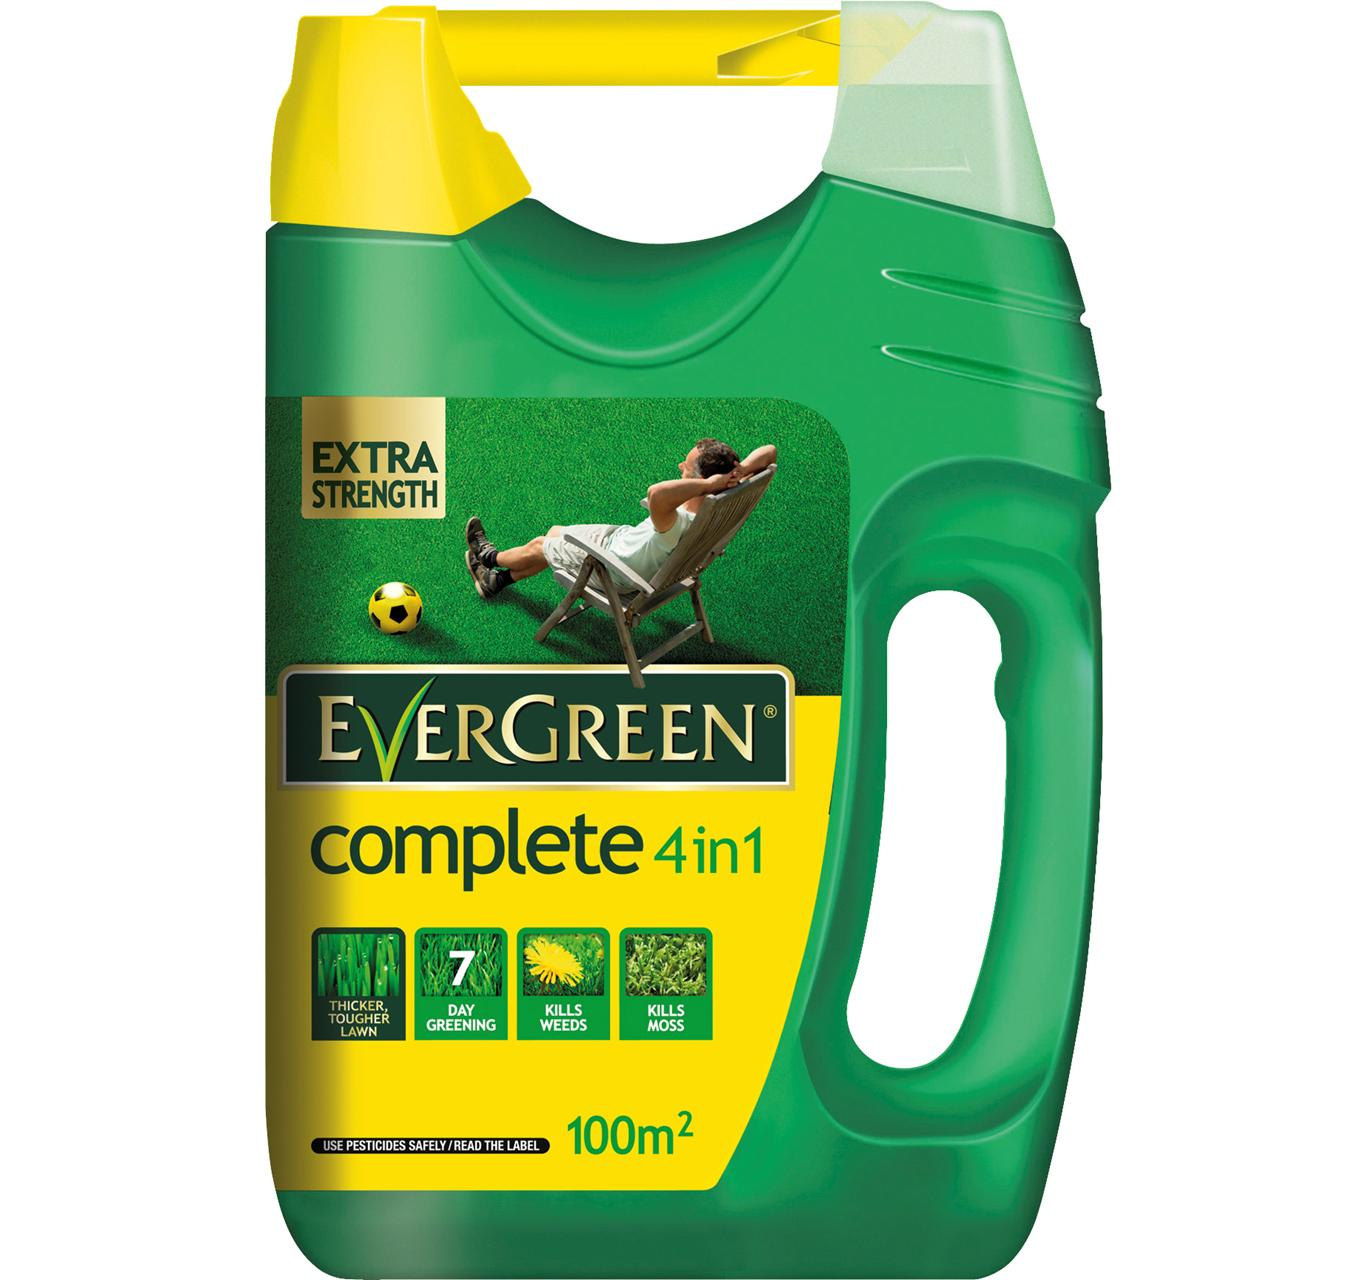 Evergreen Complete 4in1 100m2